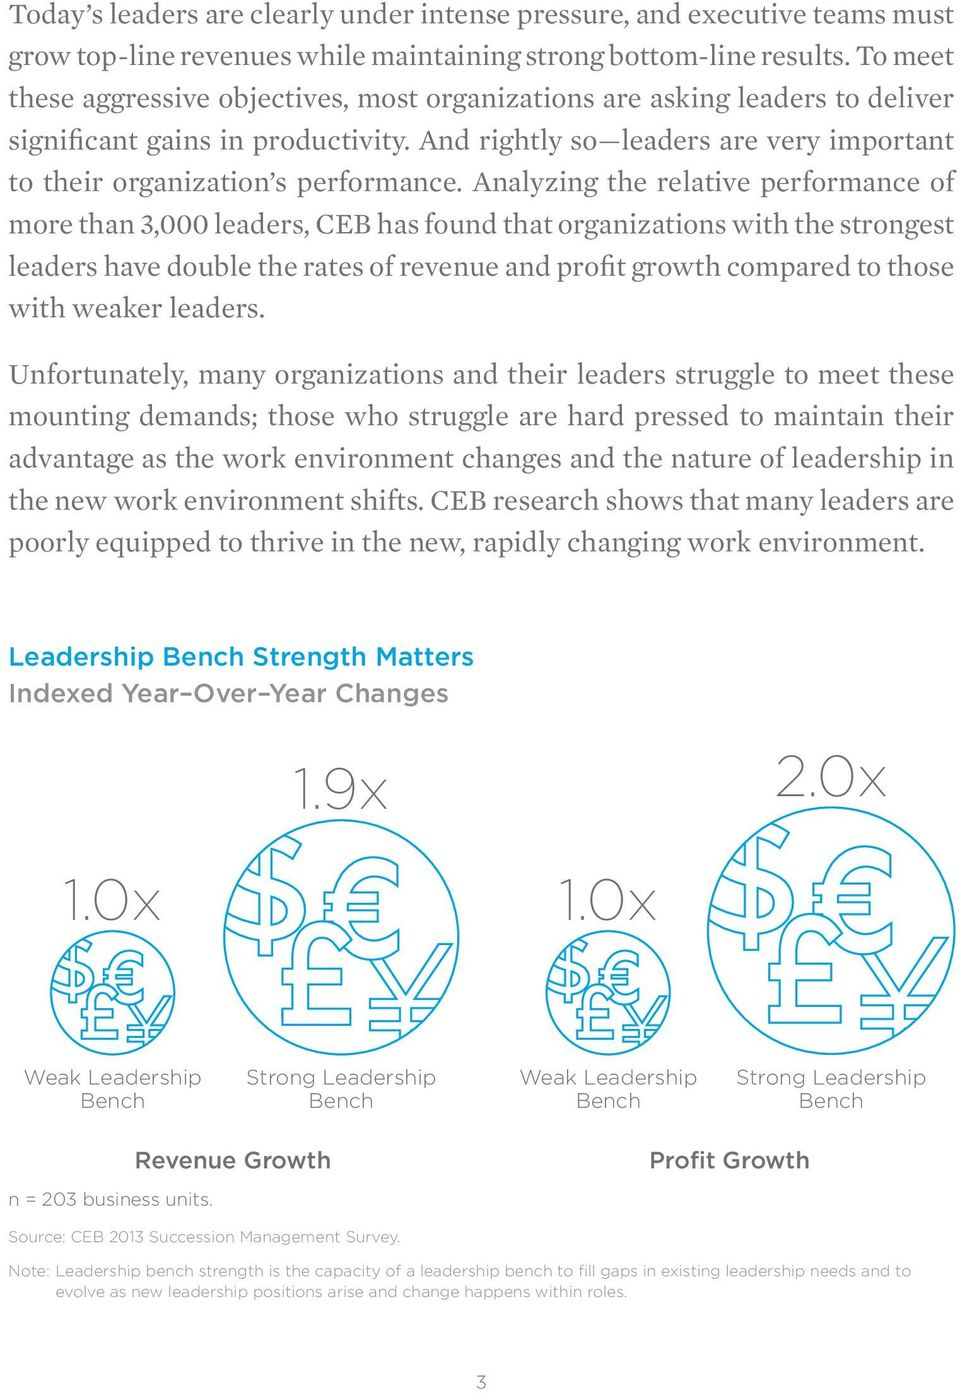 Analyzing the relative performance of more than 3,000 leaders, CEB has found that organizations with the strongest leaders have double the rates of revenue and profit growth compared to those with